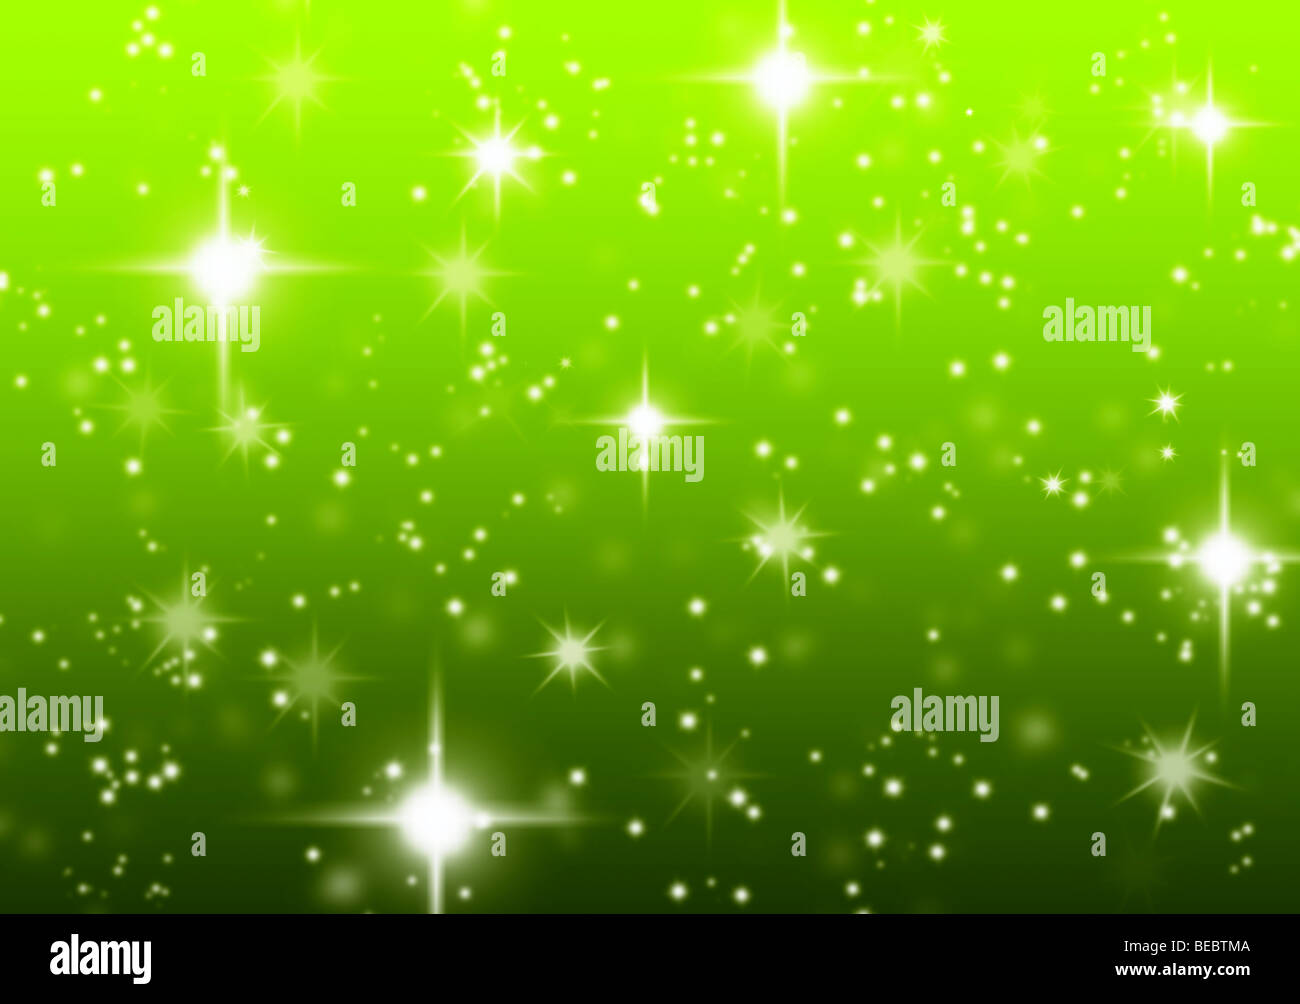 Green starry Christmas holiday abstract background created